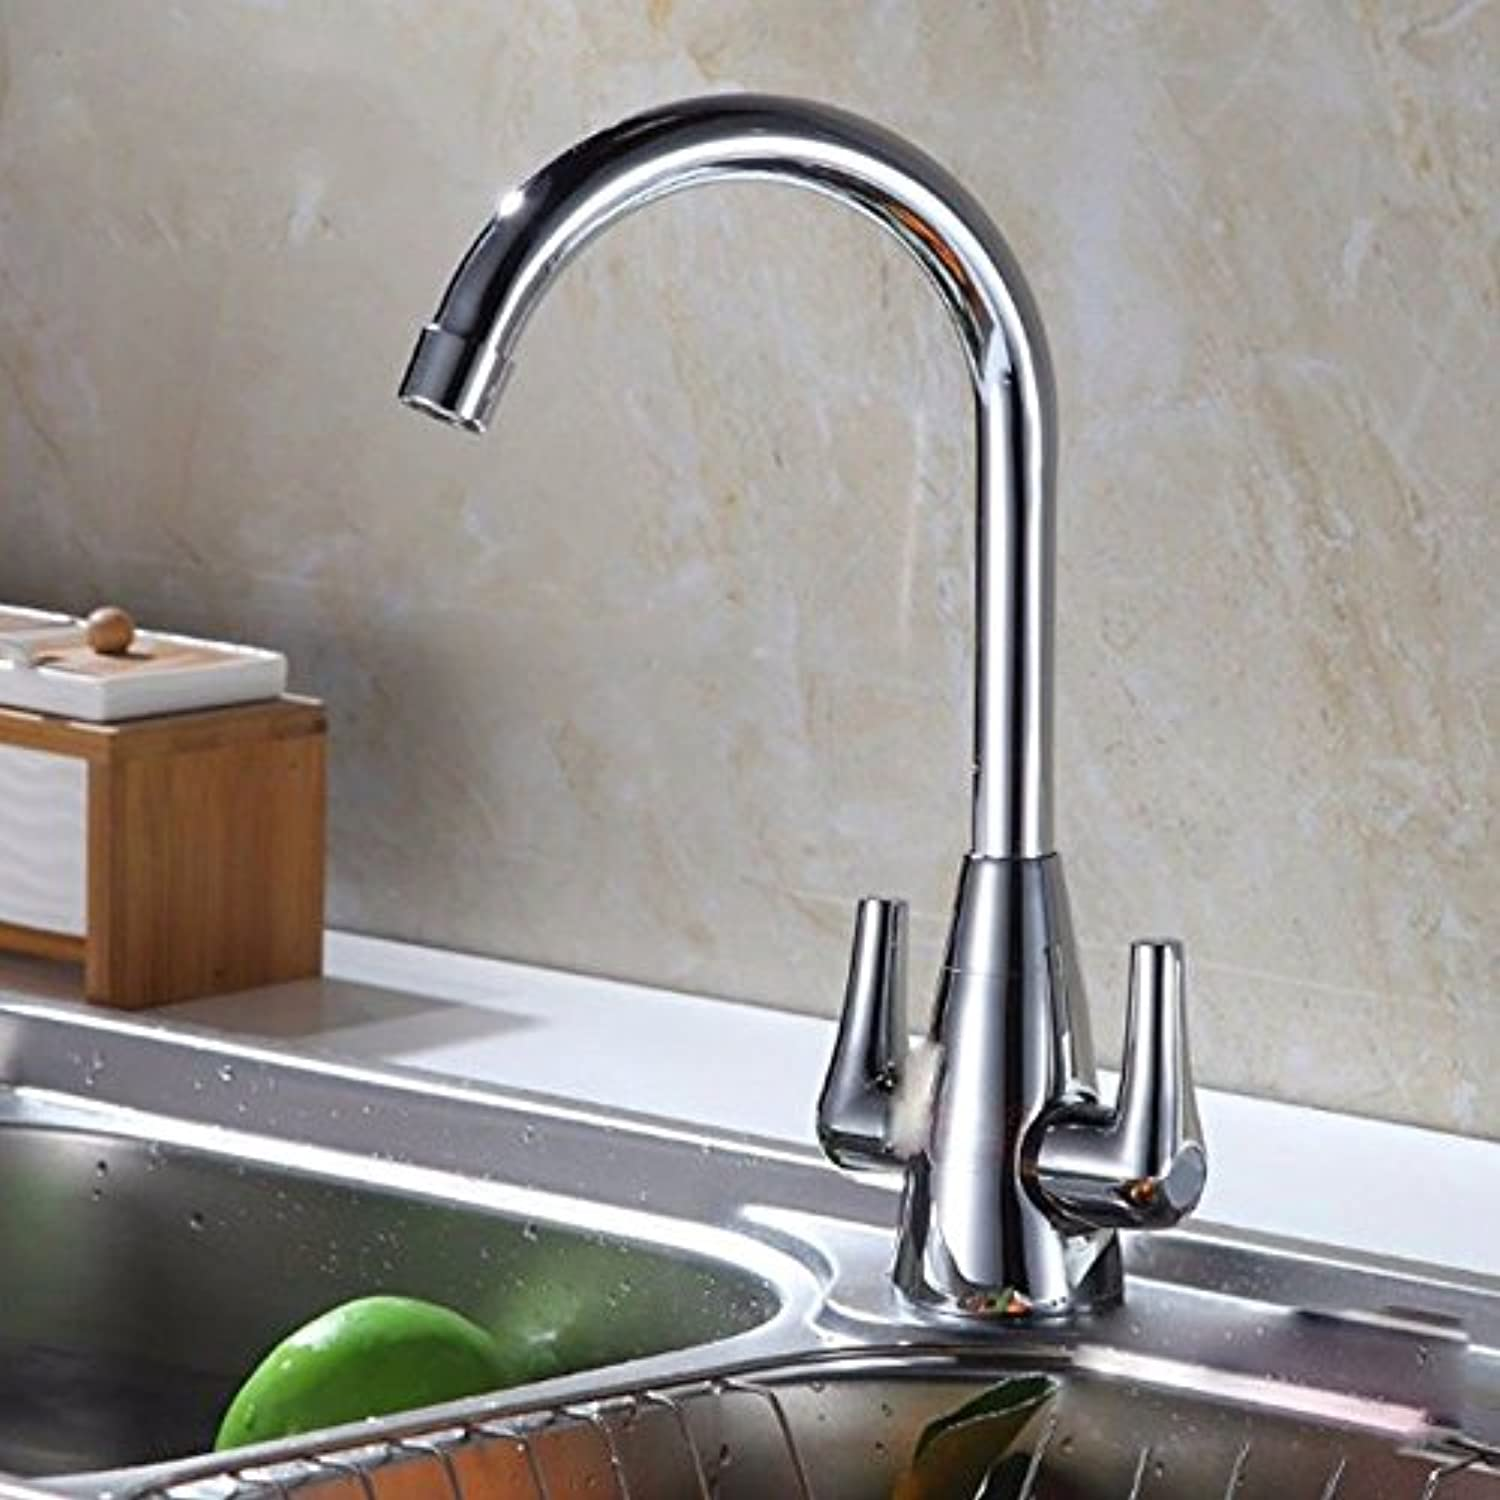 Lalaky Taps Faucet Kitchen Mixer Sink Waterfall Bathroom Mixer Basin Mixer Tap for Kitchen Bathroom and Washroom Full Copper Double Handle Single Hole Hot and Cold Mixing Valve